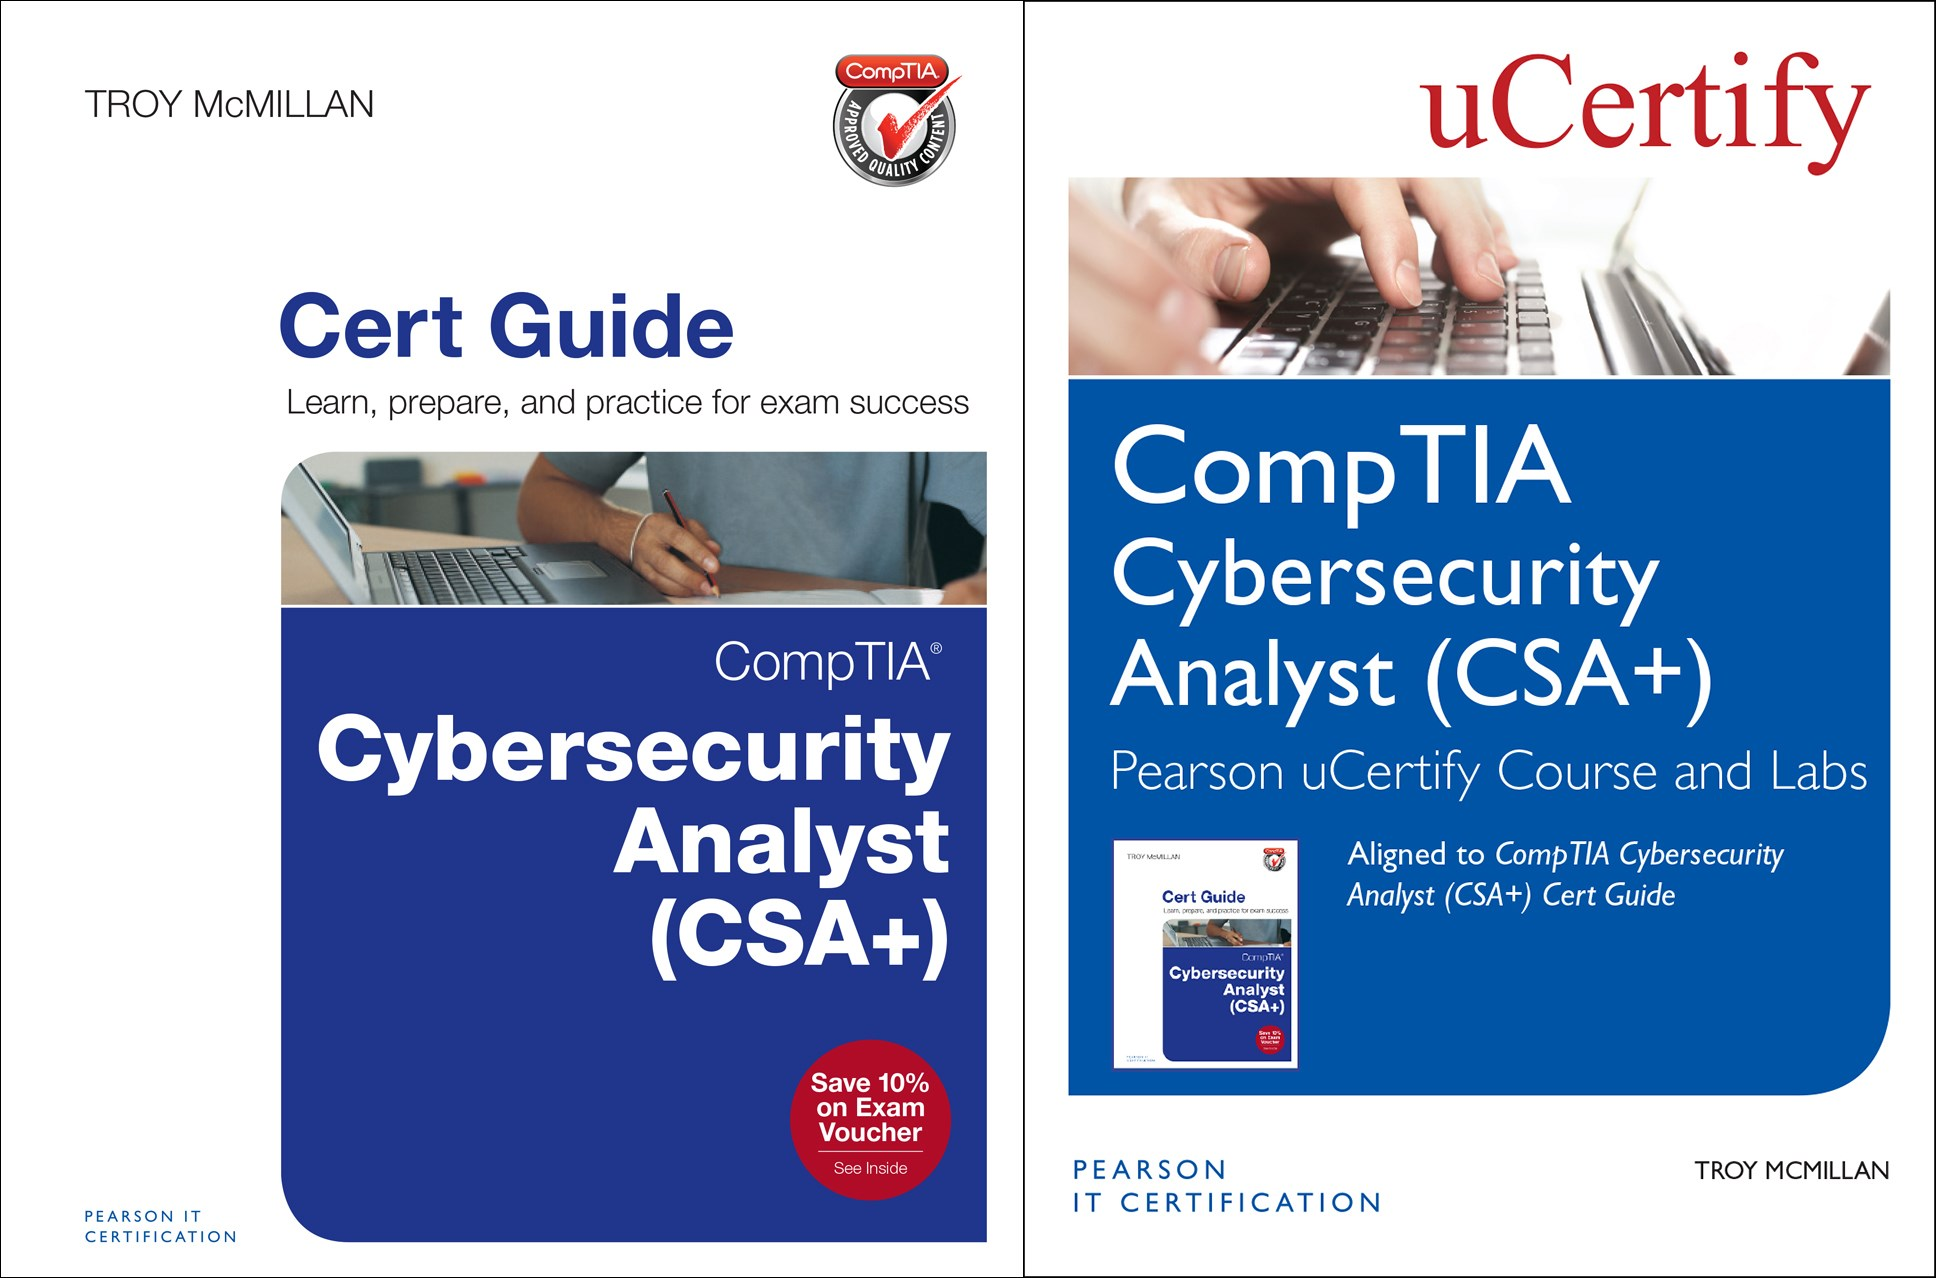 CompTIA Cybersecurity Analyst (CSA+) Pearson uCertify Course and Labs and Textbook Bundle